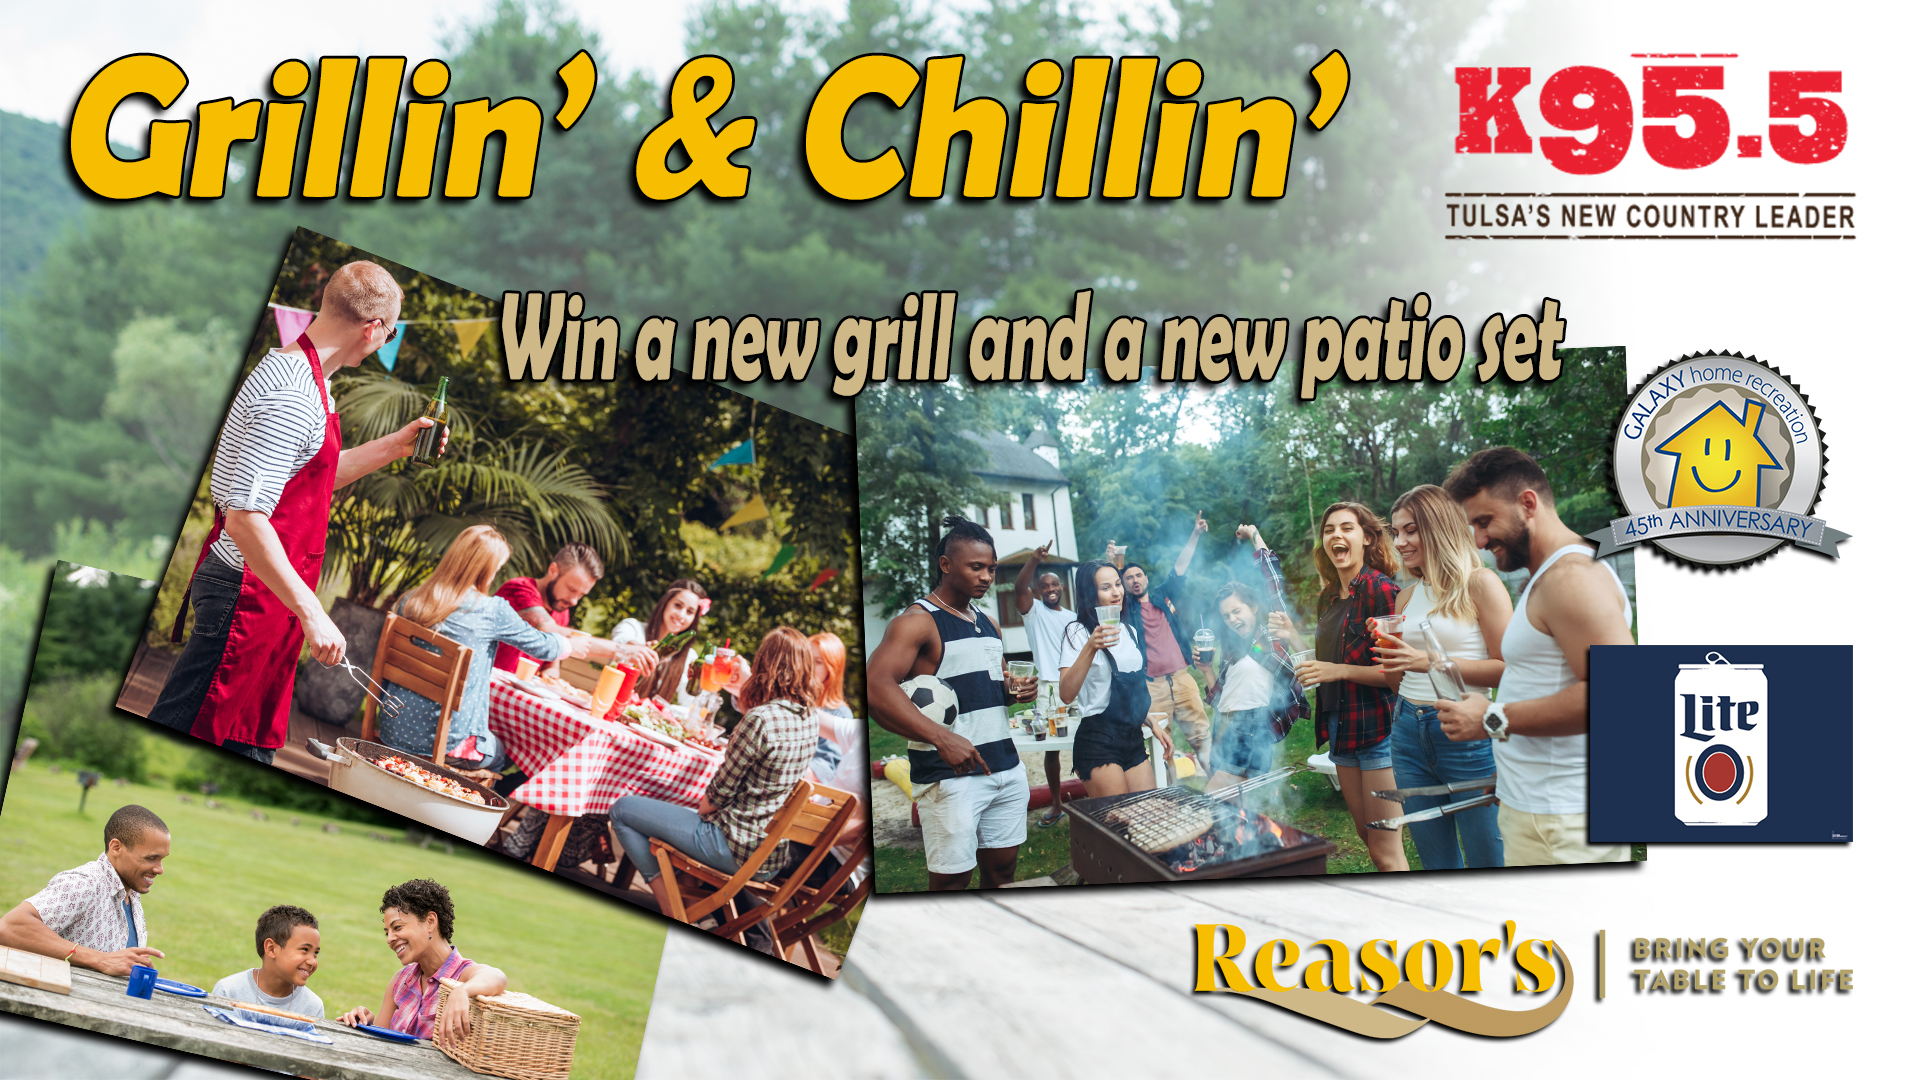 Grillin' and Chillin' with Miller Lite and K95.5!